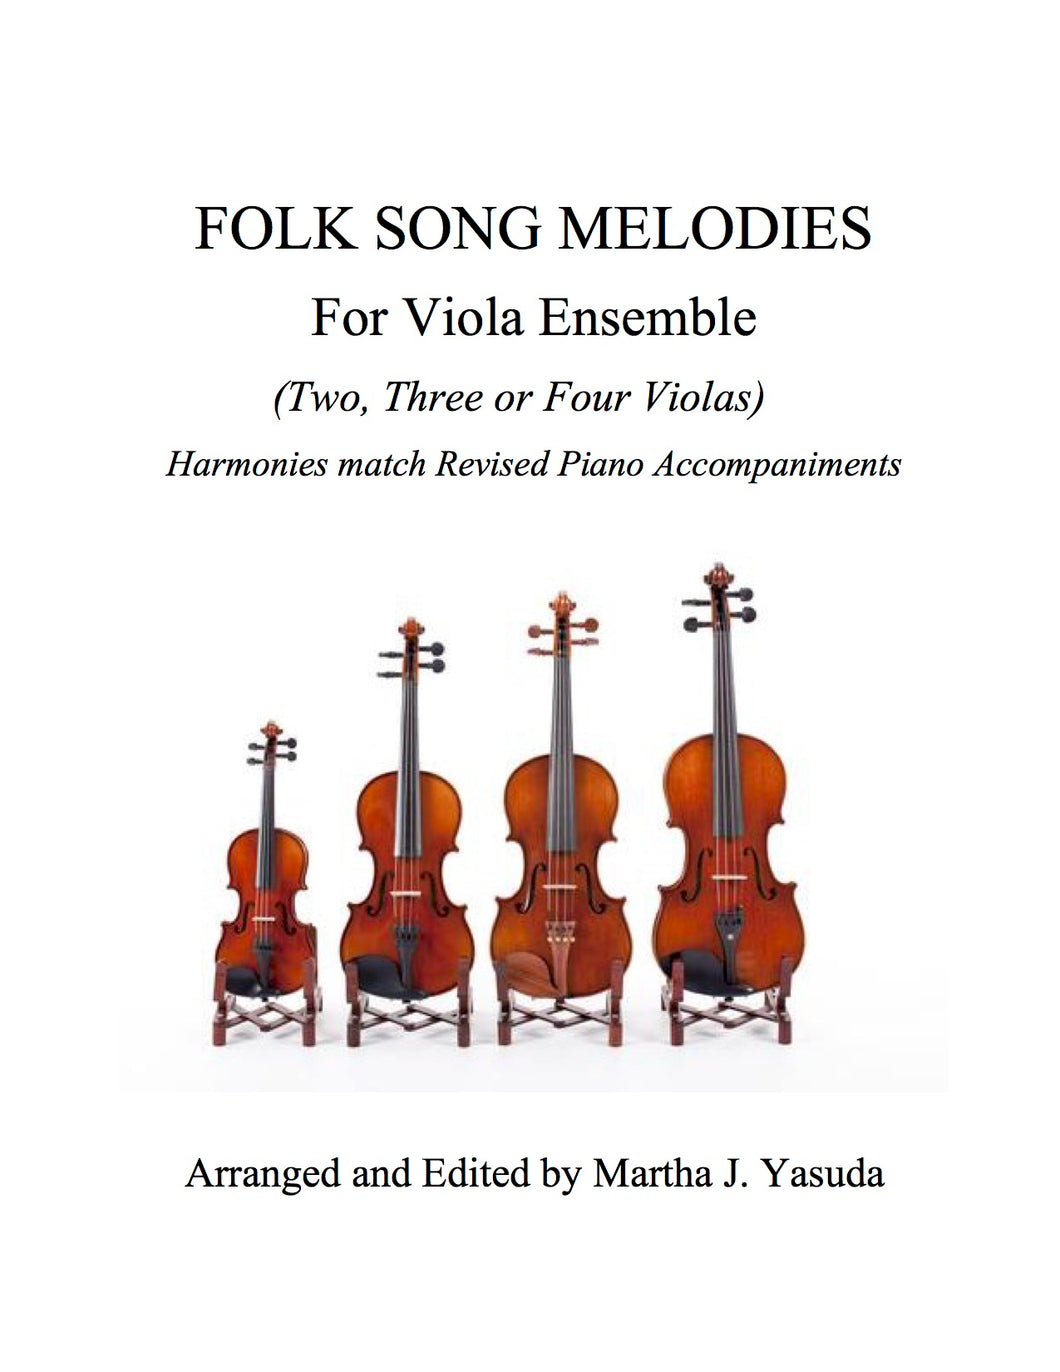 017 BUNDLE - Folk Song Melodies For Viola Ensemble (Twinkle - Etude)